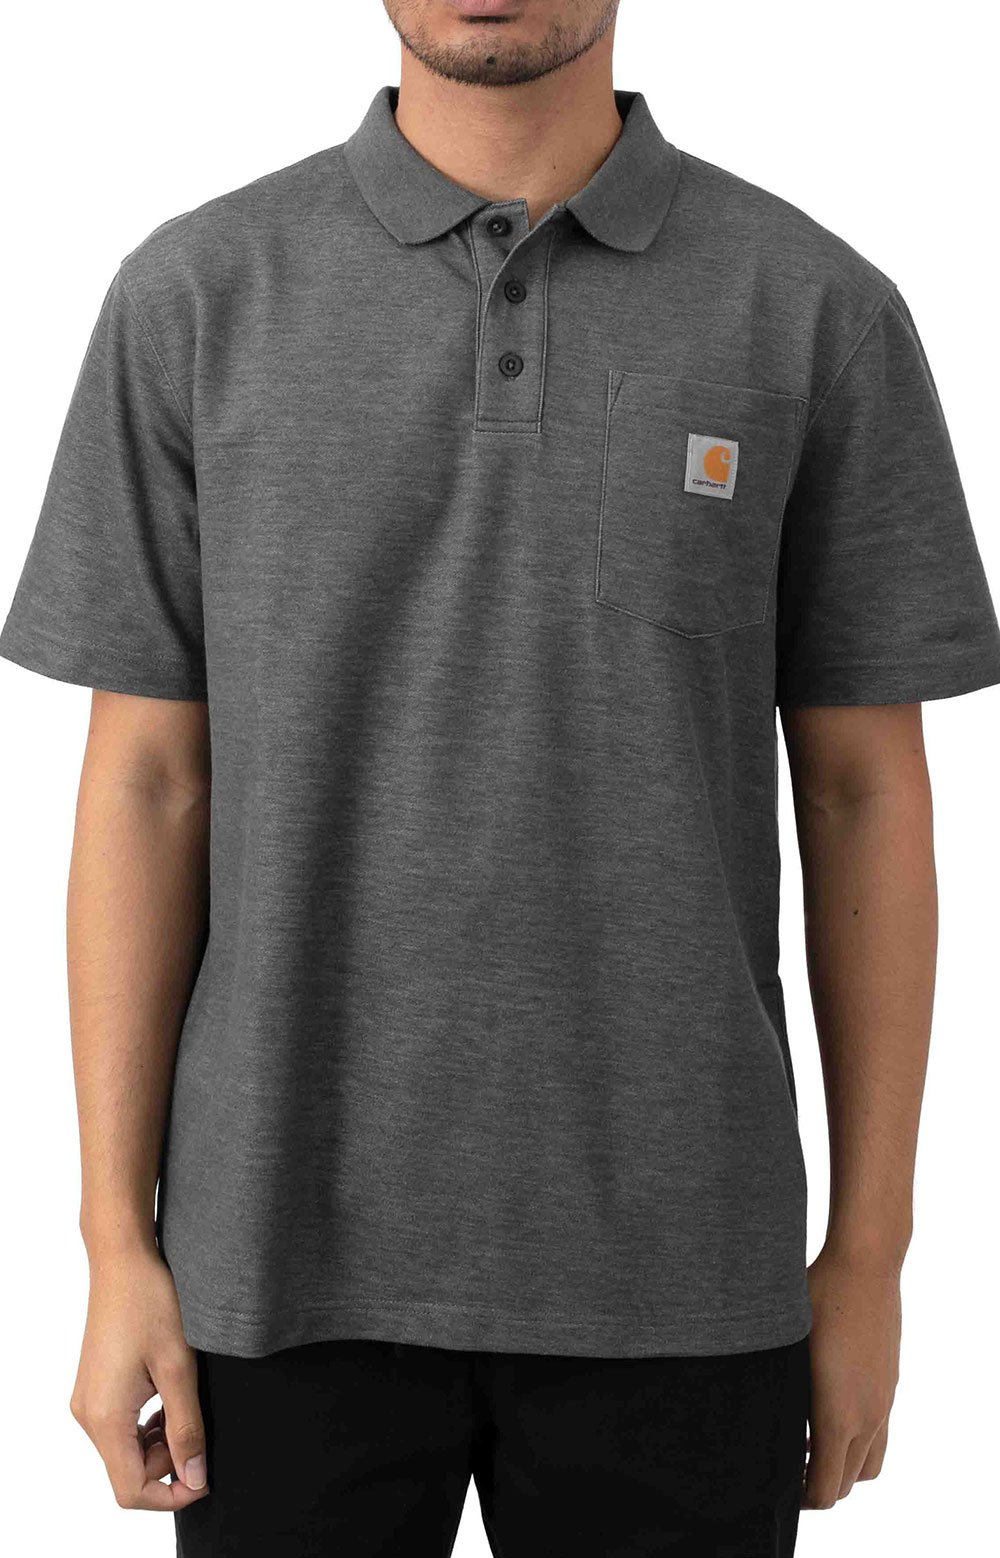 (K570) Contractor's Work Pocket Polo - Carbon Heather